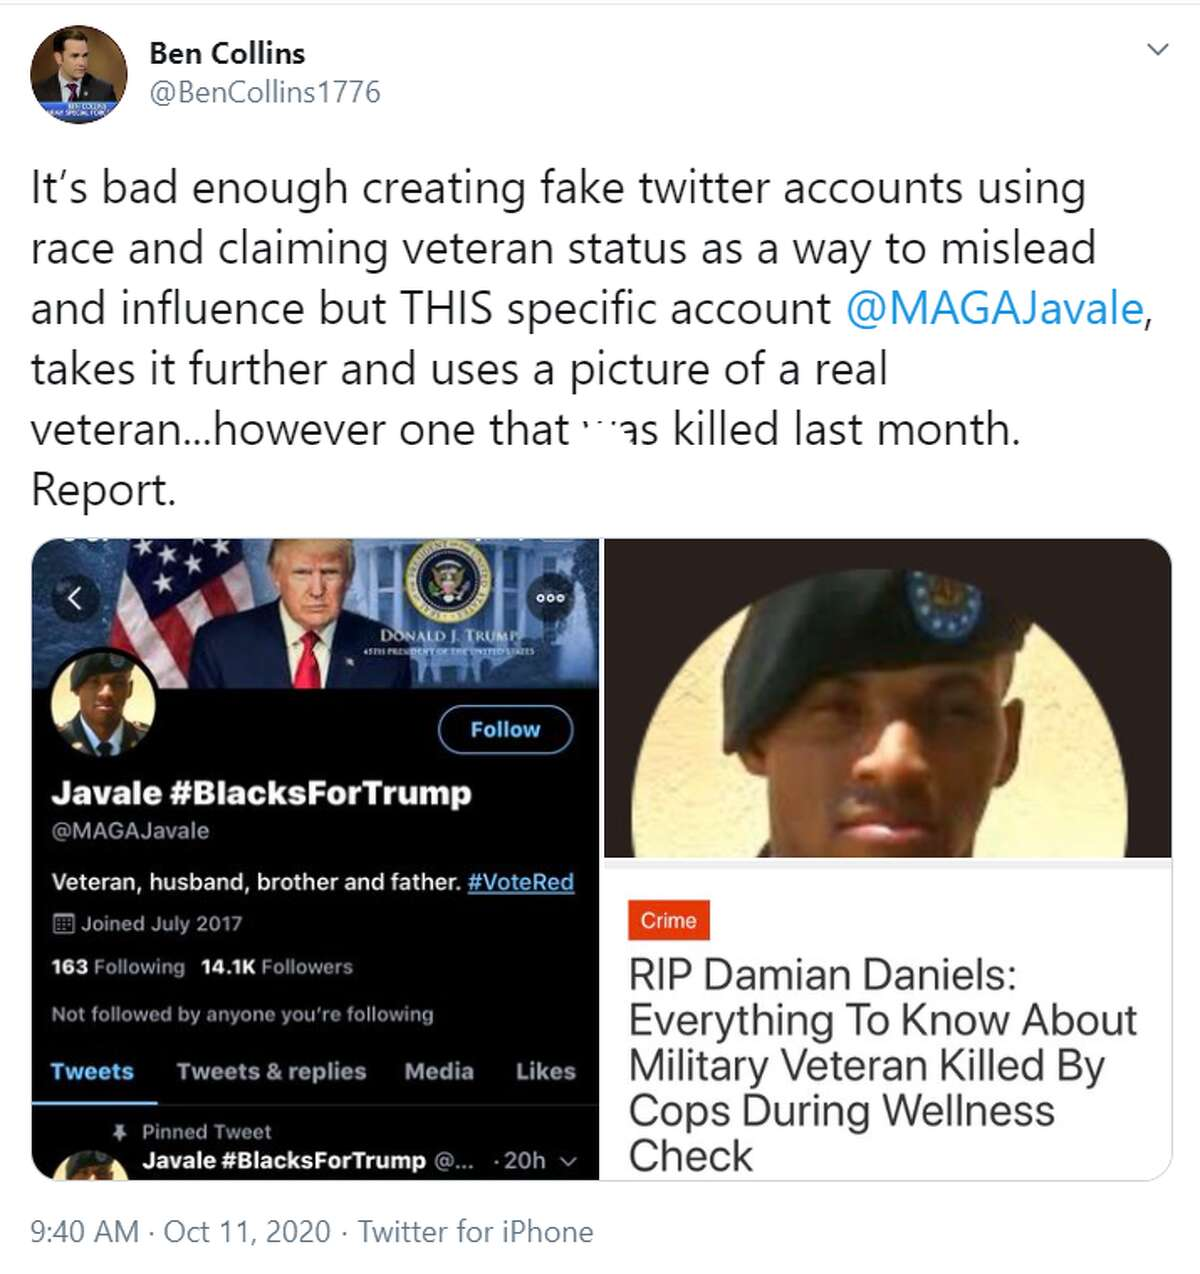 Twitter has been removing dozens of fake accounts claiming to be Black voters in support of President Trump, including one account that posed as a Damian Daniels, the man killed by BCSO deputies in August.